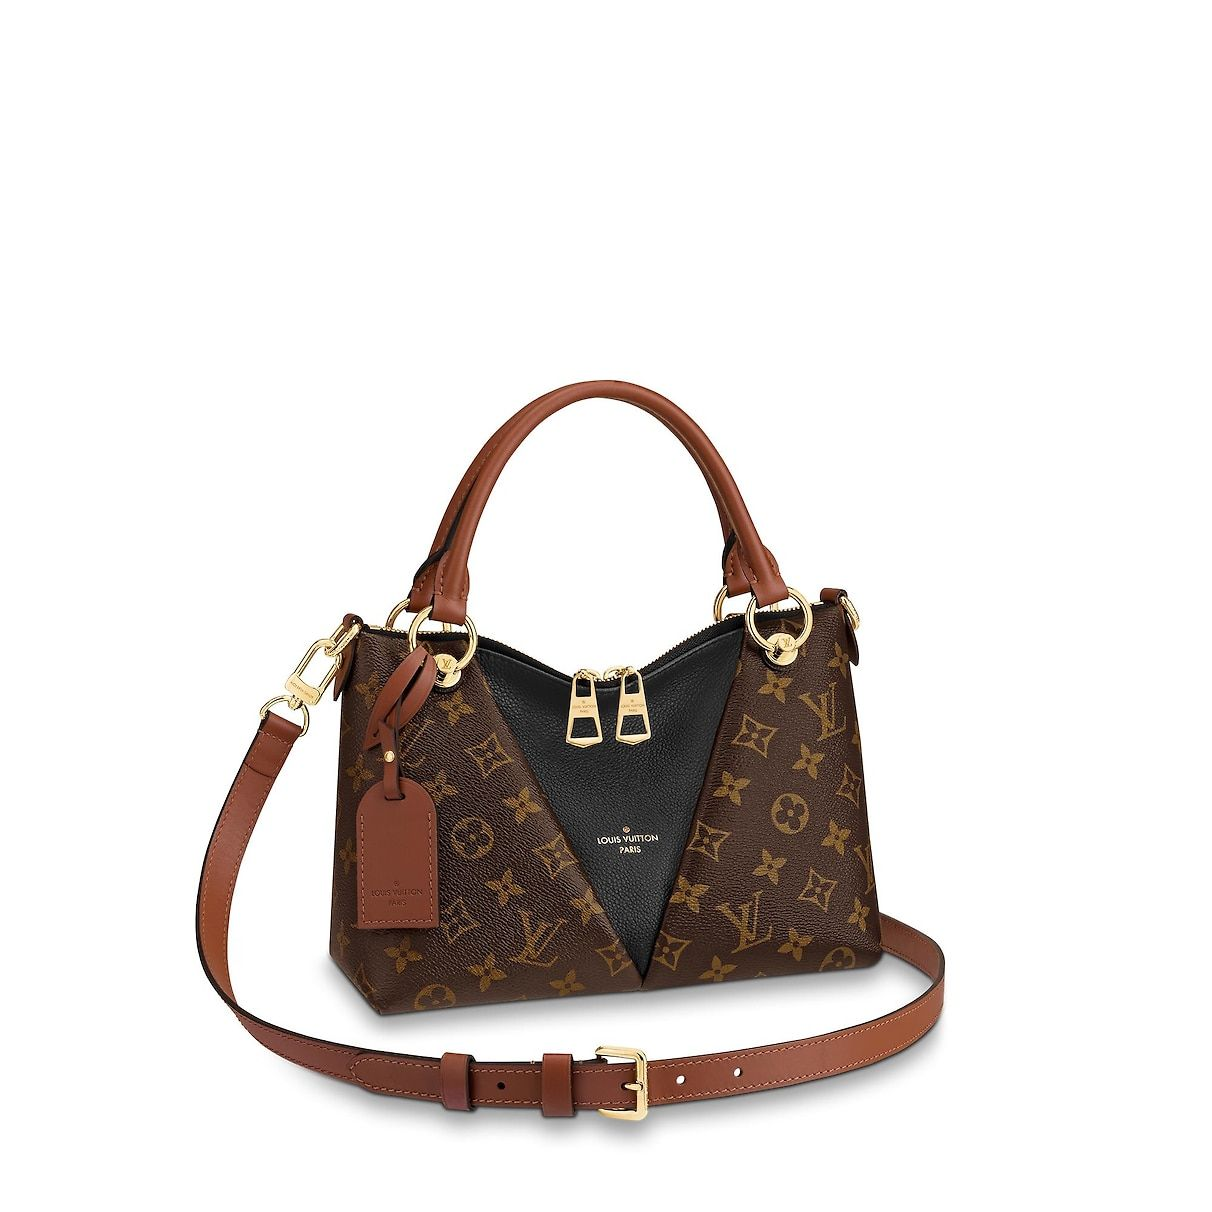 562969645e View 1 - V Tote BB Monogram Canvas in Women s Handbags Top Handles  collections by Louis Vuitton